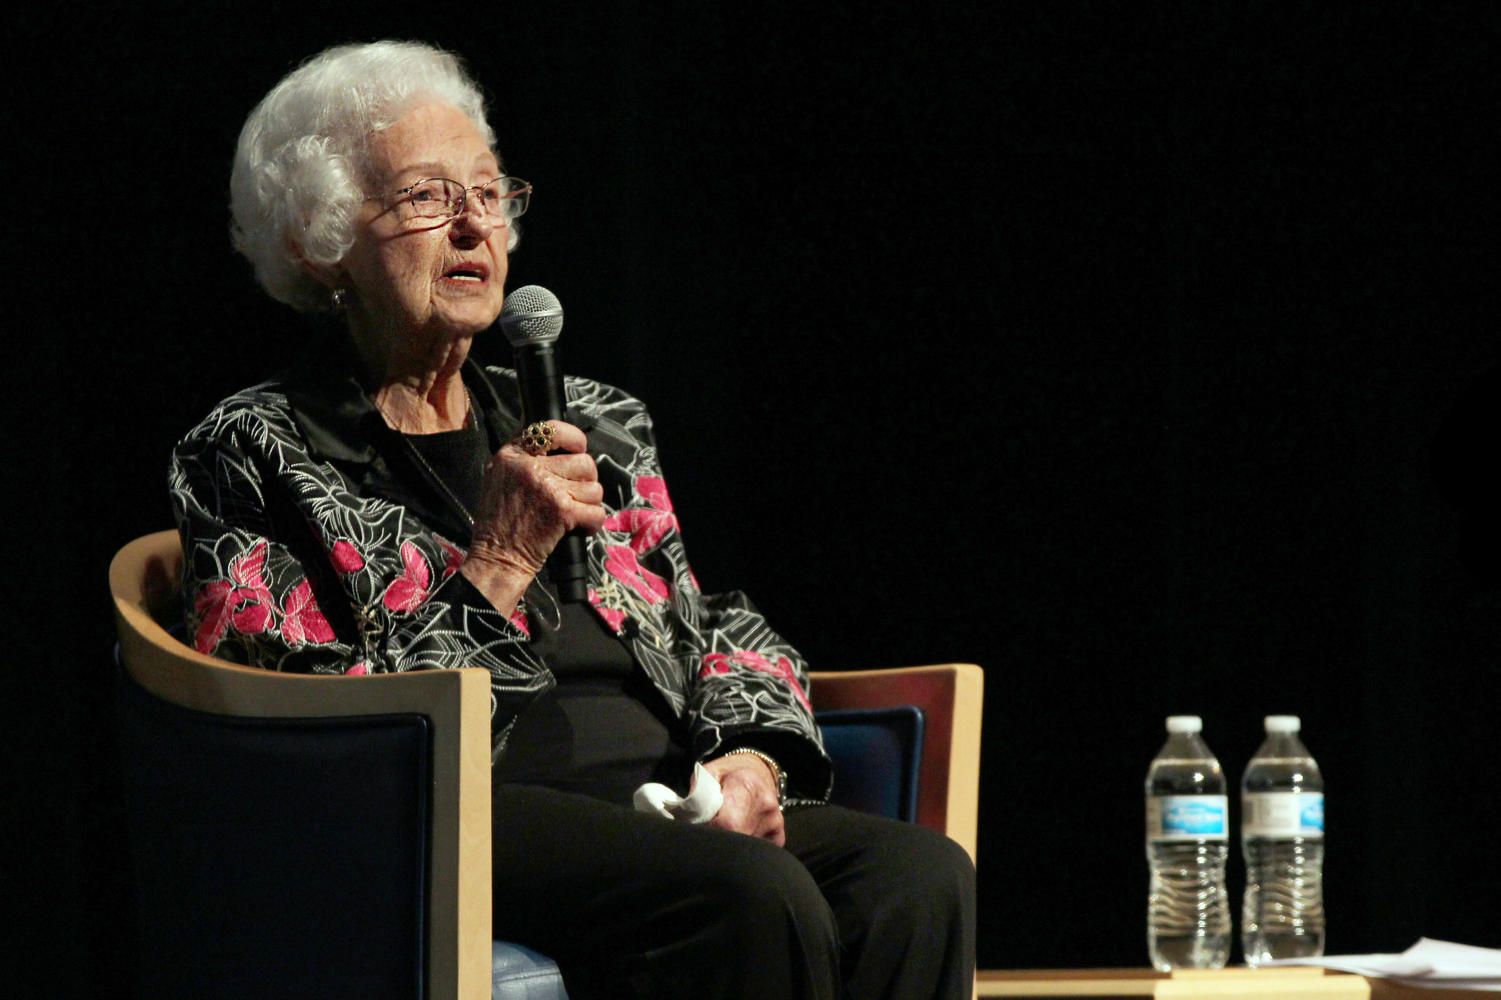 Marie Tippit addresses the audience at the Allen Public Library on Thursday, Nov. 15. Tippit was there to talk about her husband, JD, a police officer killed in the line of duty in 1963 by Lee Harvey Oswald.